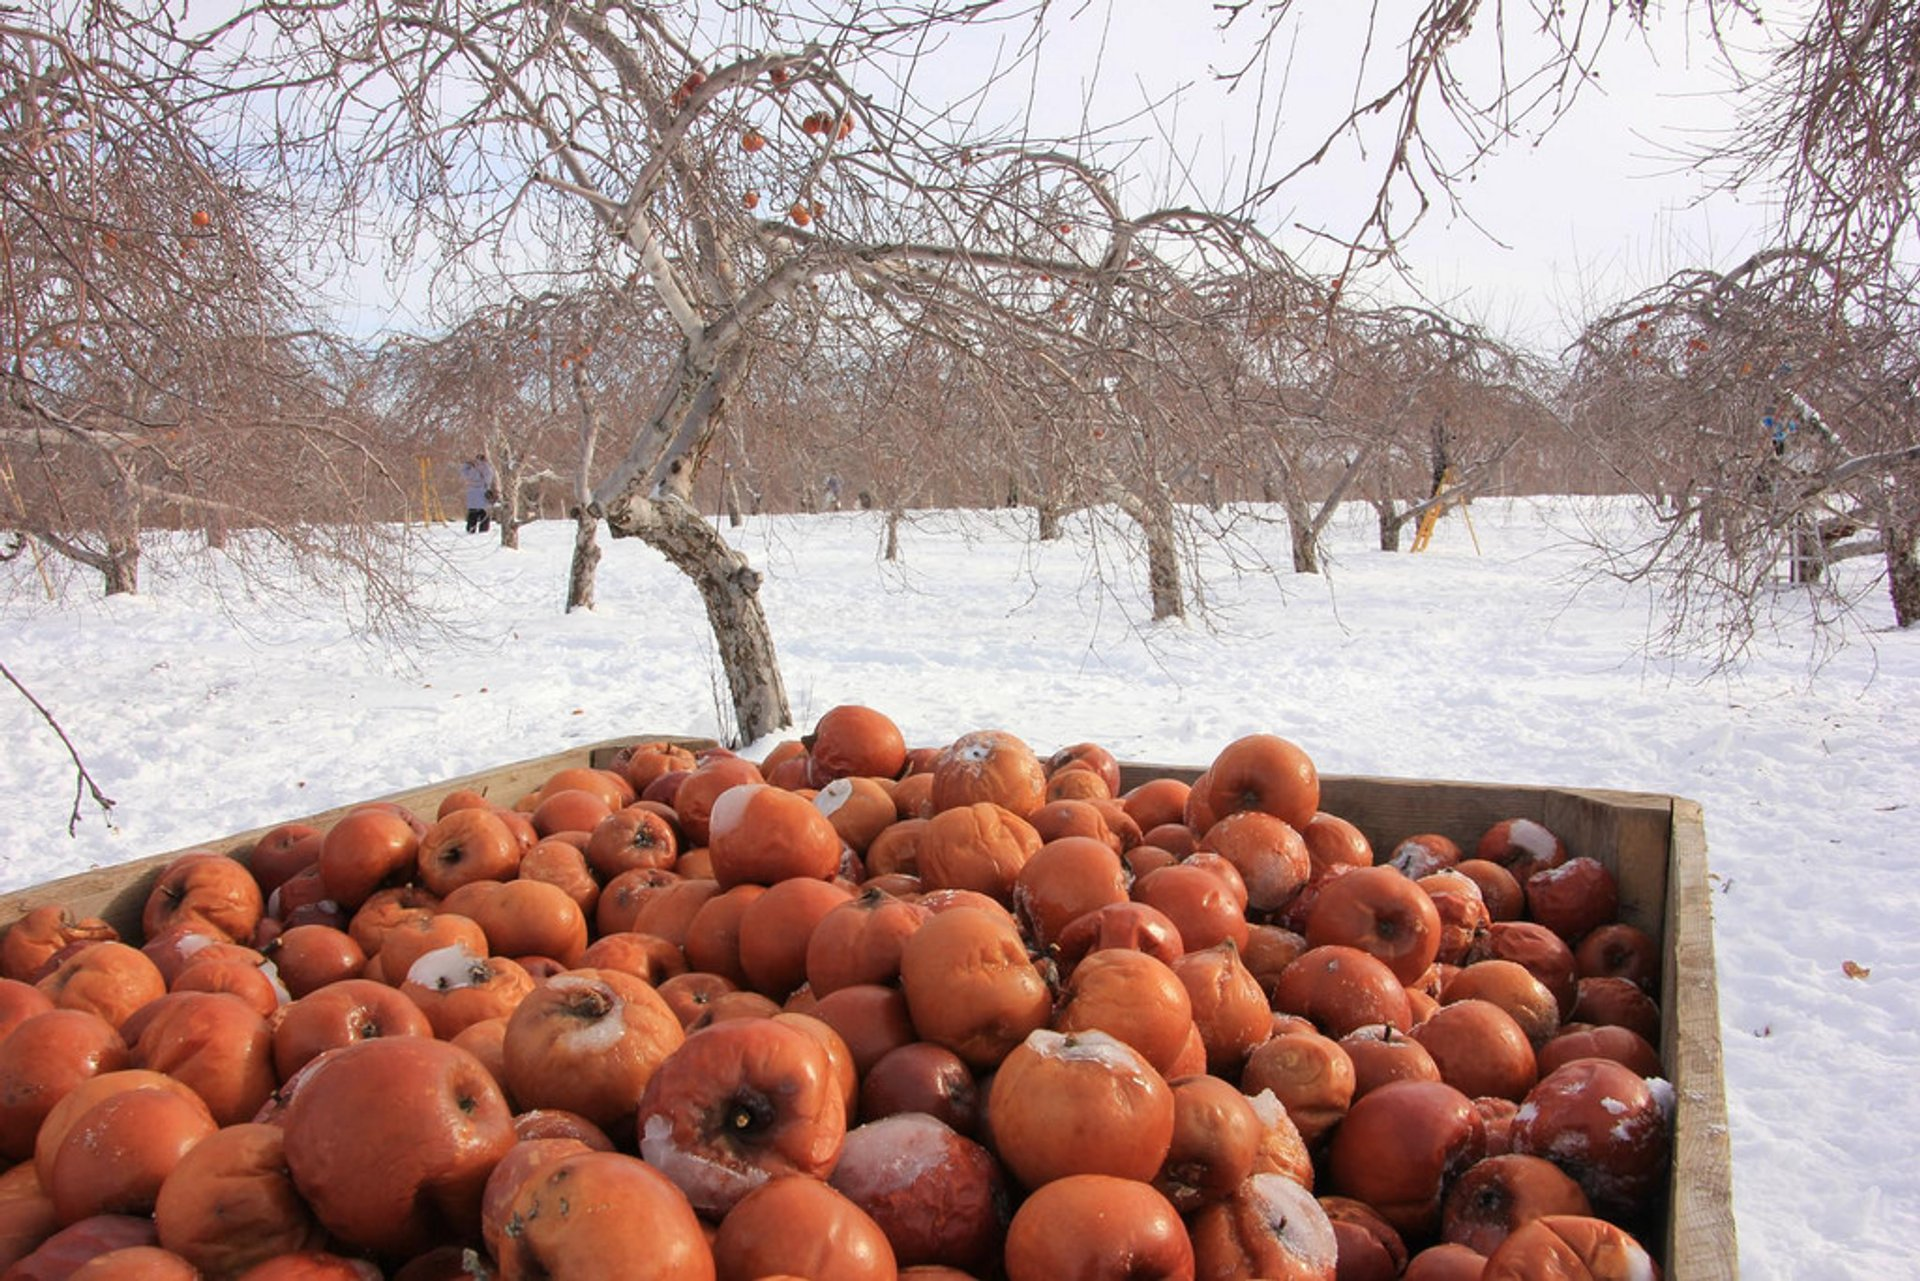 Ice Cider Apple Picking in Quebec - Best Season 2020